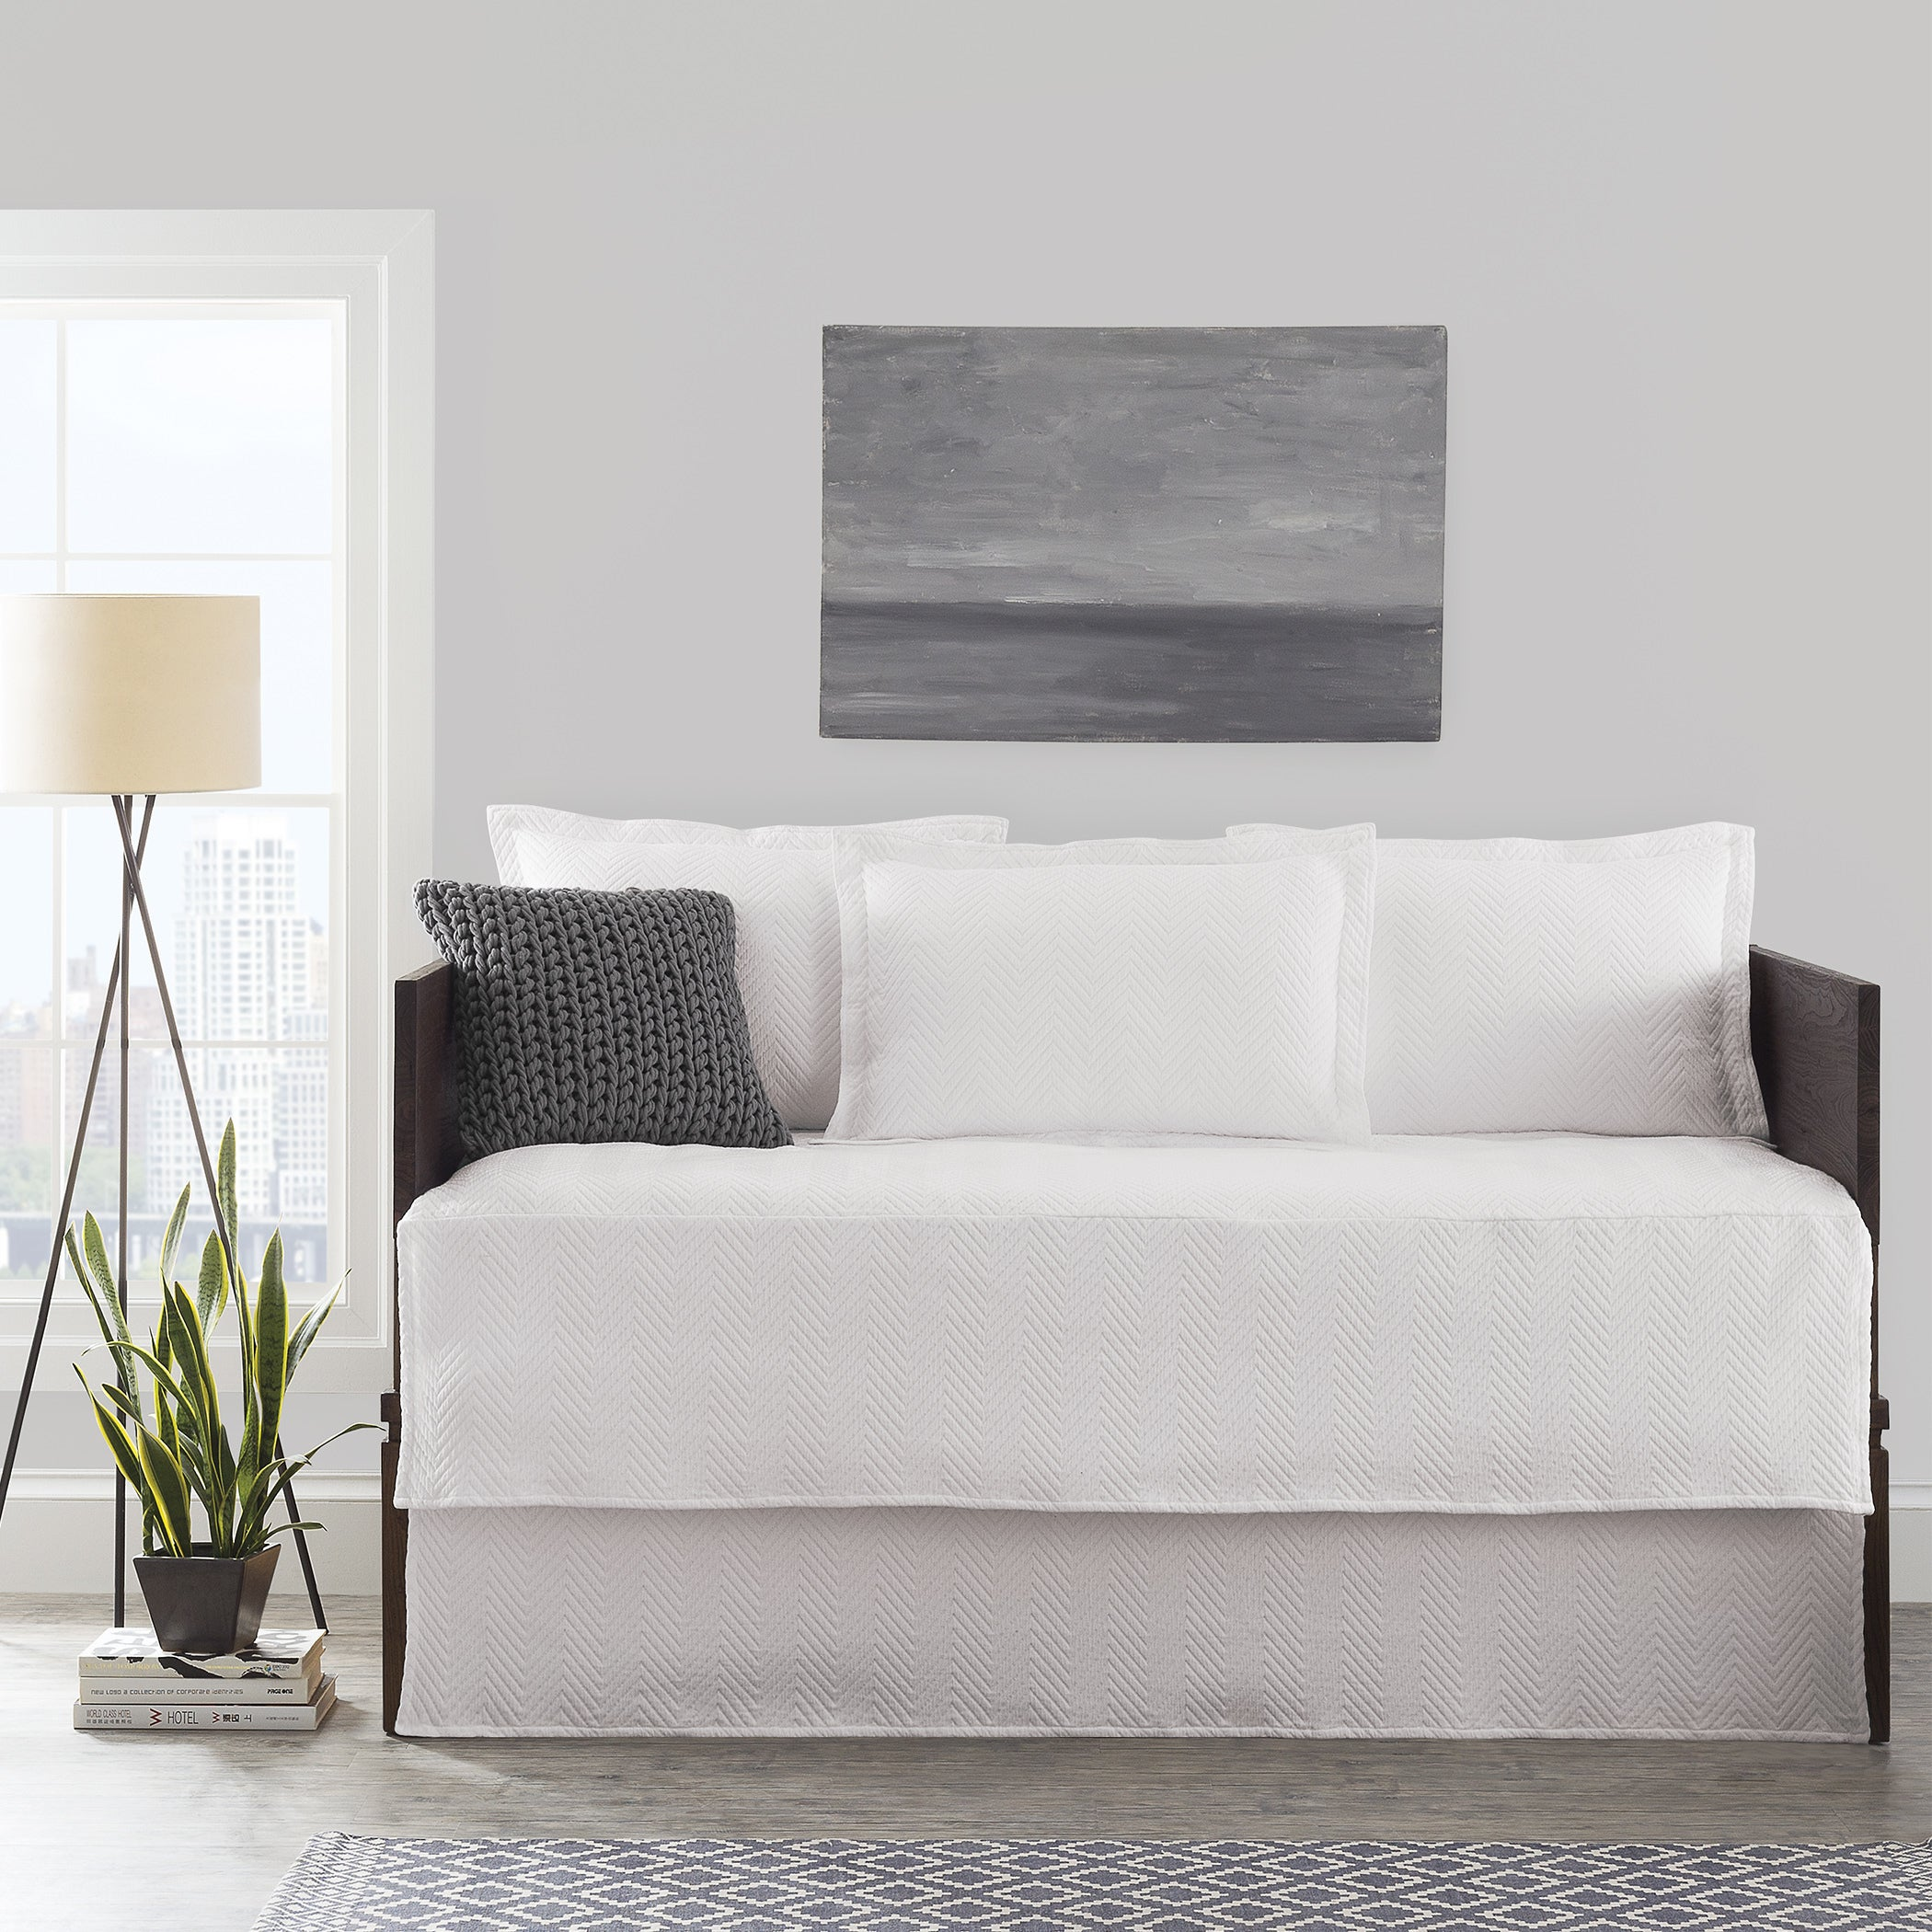 LaMont Home Chevron Day Bed Cover Set (Off-White (Beige))...